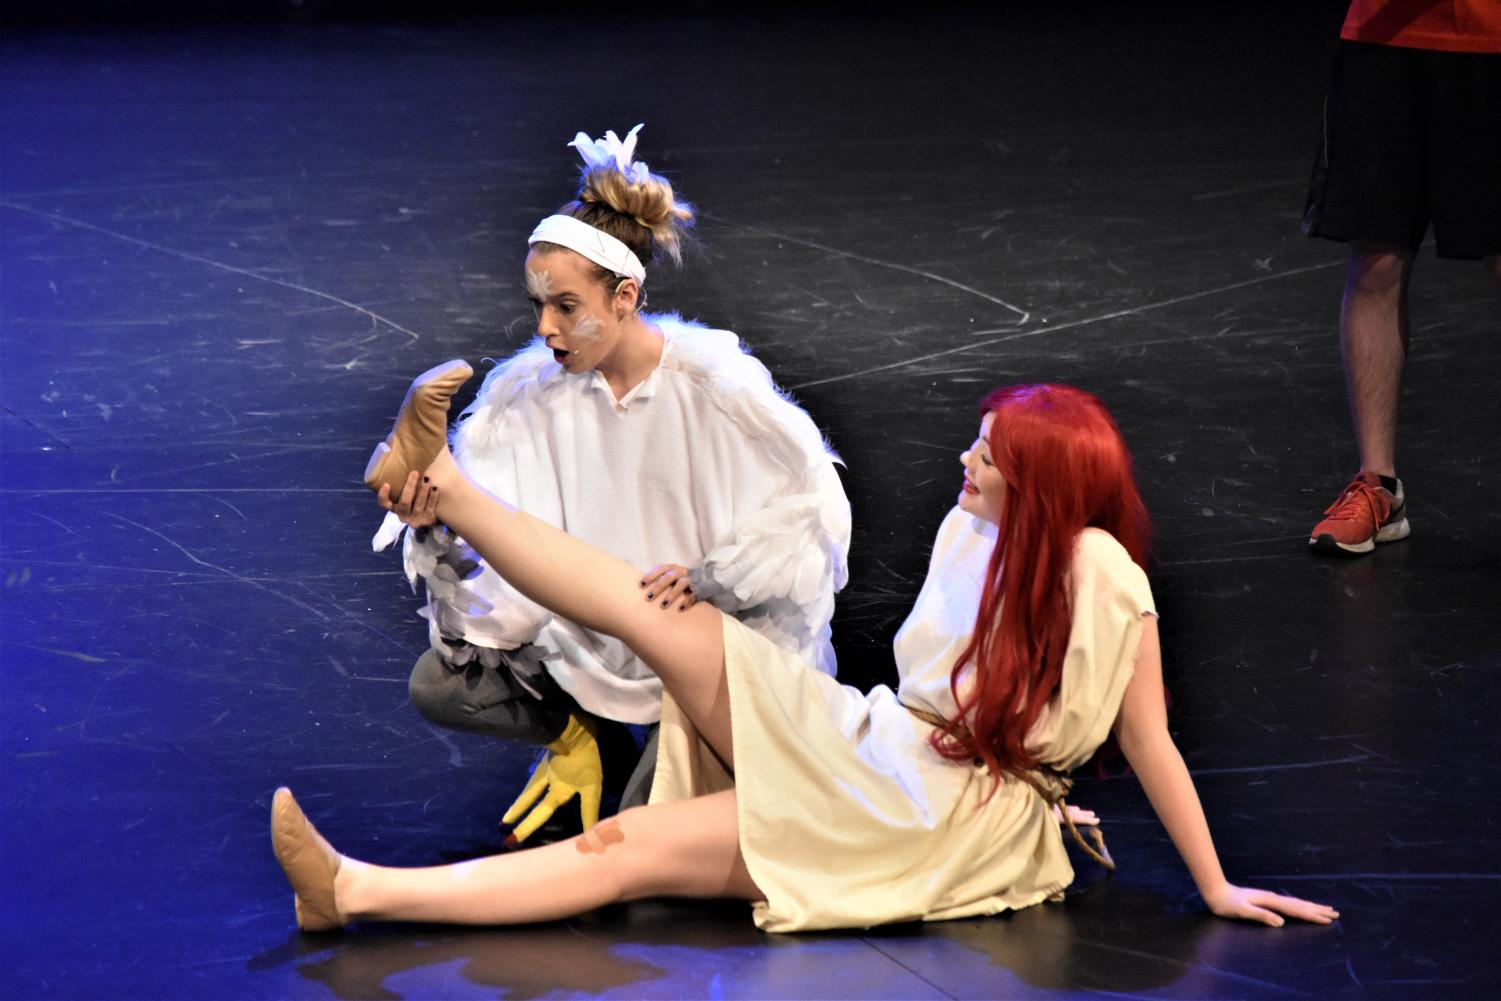 Scuttle (junior Kressin Hartl) gazes in awe at Ariel's (Kendall Lawless') new feet.